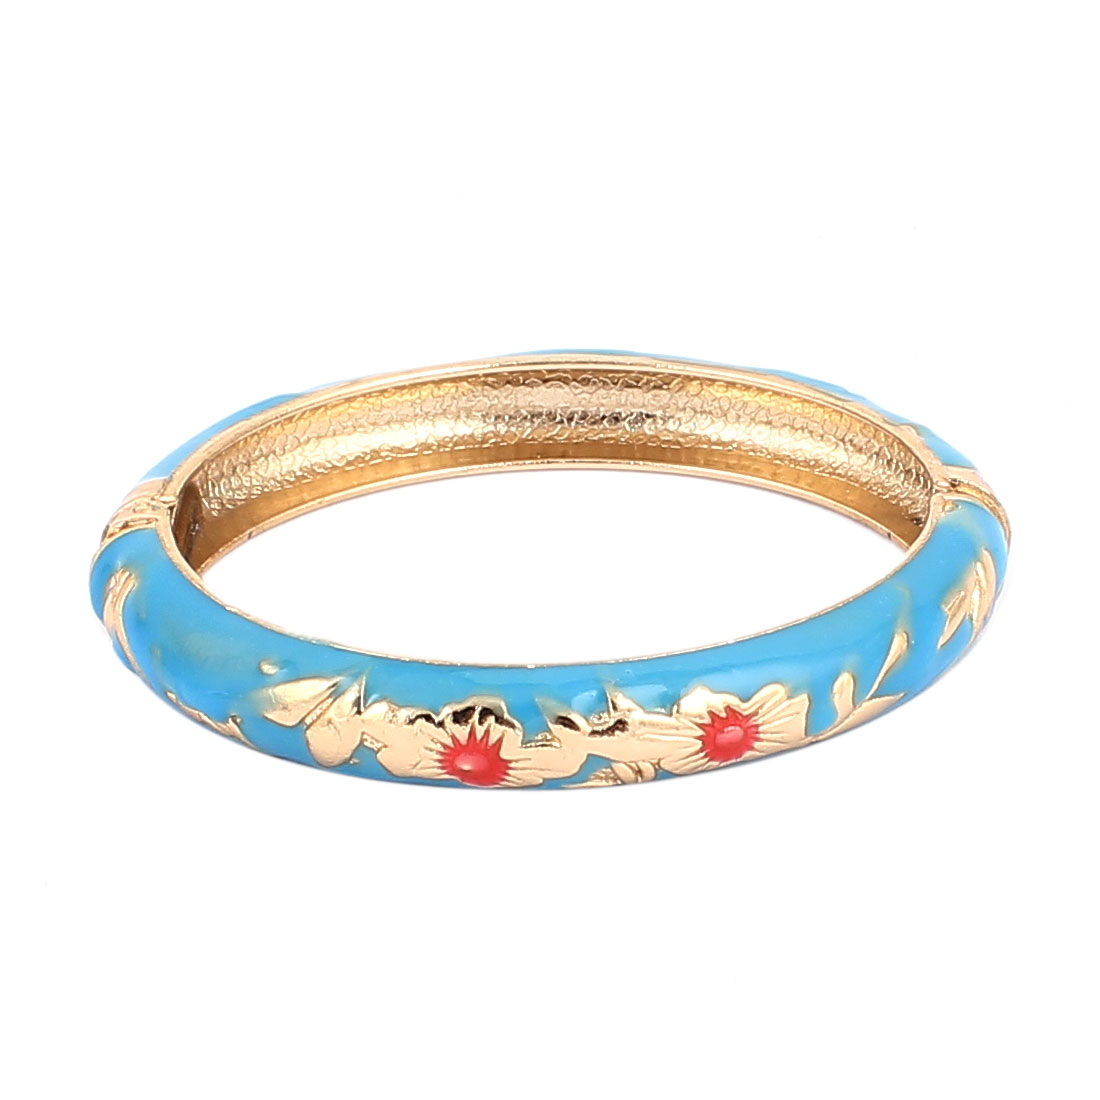 Woman Lady Spring Hinged Round Cuff Flower Pattern Enamel Bracelet Bangle Blue